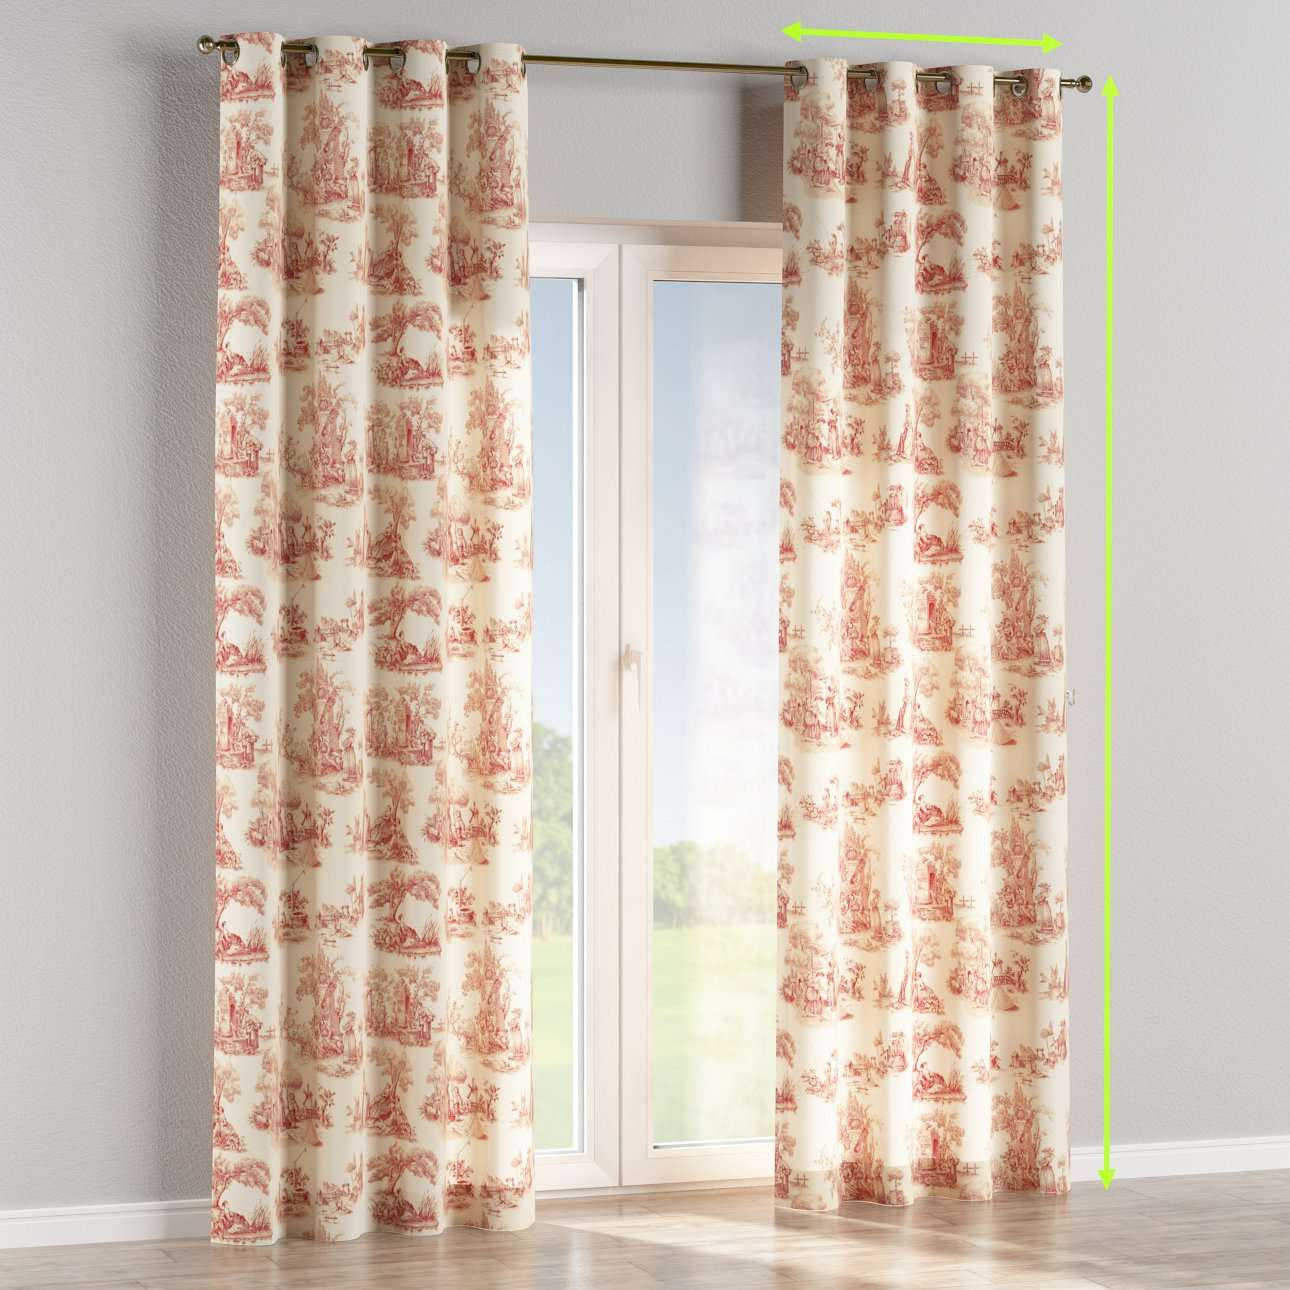 Eyelet lined curtains in collection Avinon, fabric: 132-15